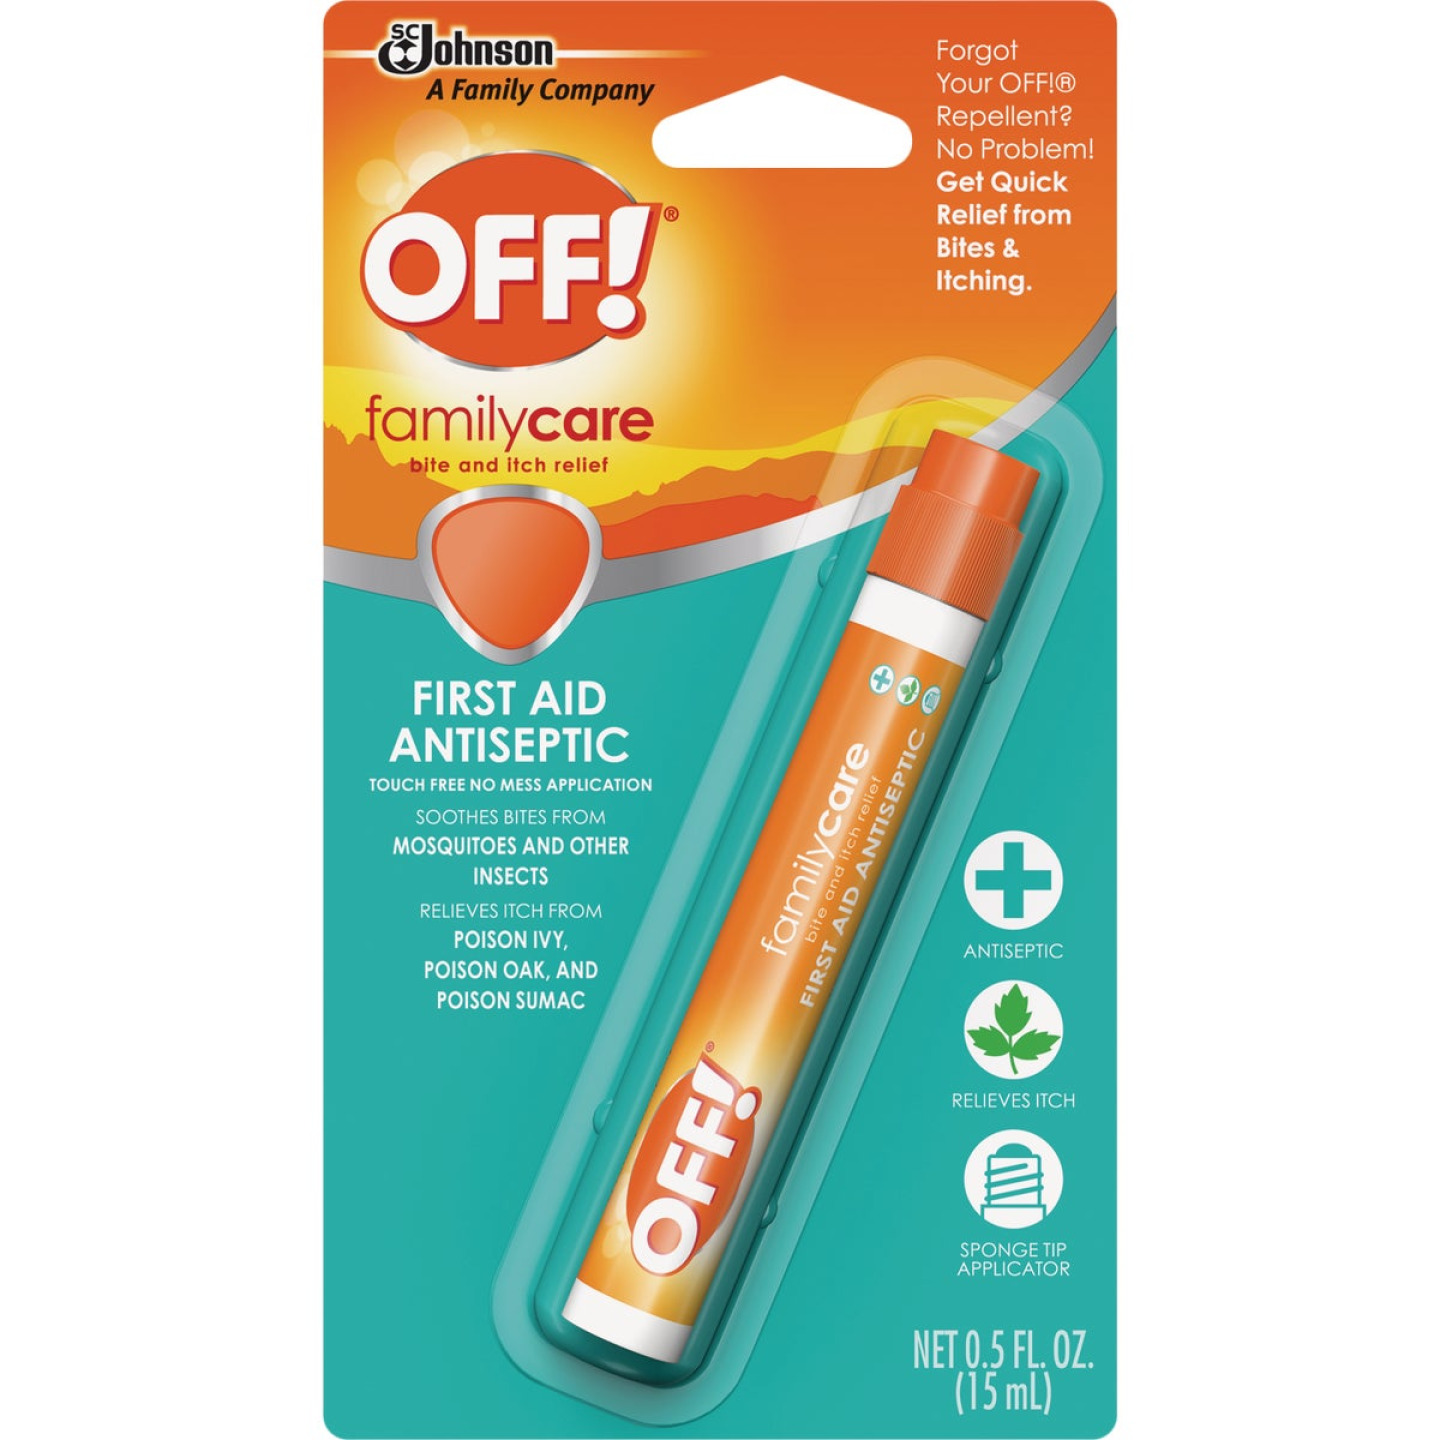 Off Family Care 0.5 Oz. Benzocaine Insect Bite & Itch Relief Image 1